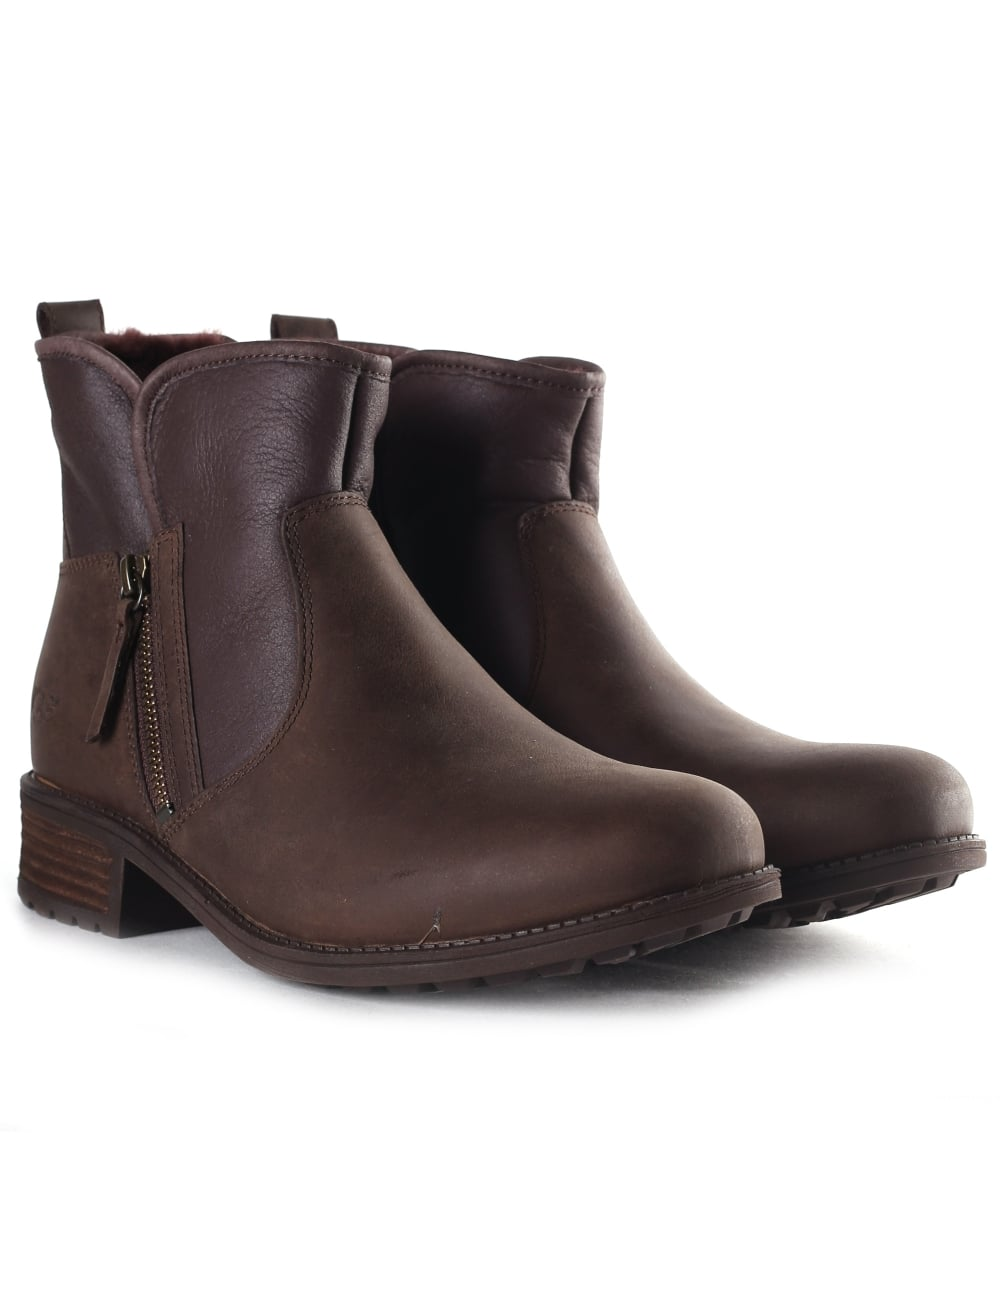 5ed0f507aa6 UGG Lavelle Women's Ankle Boots